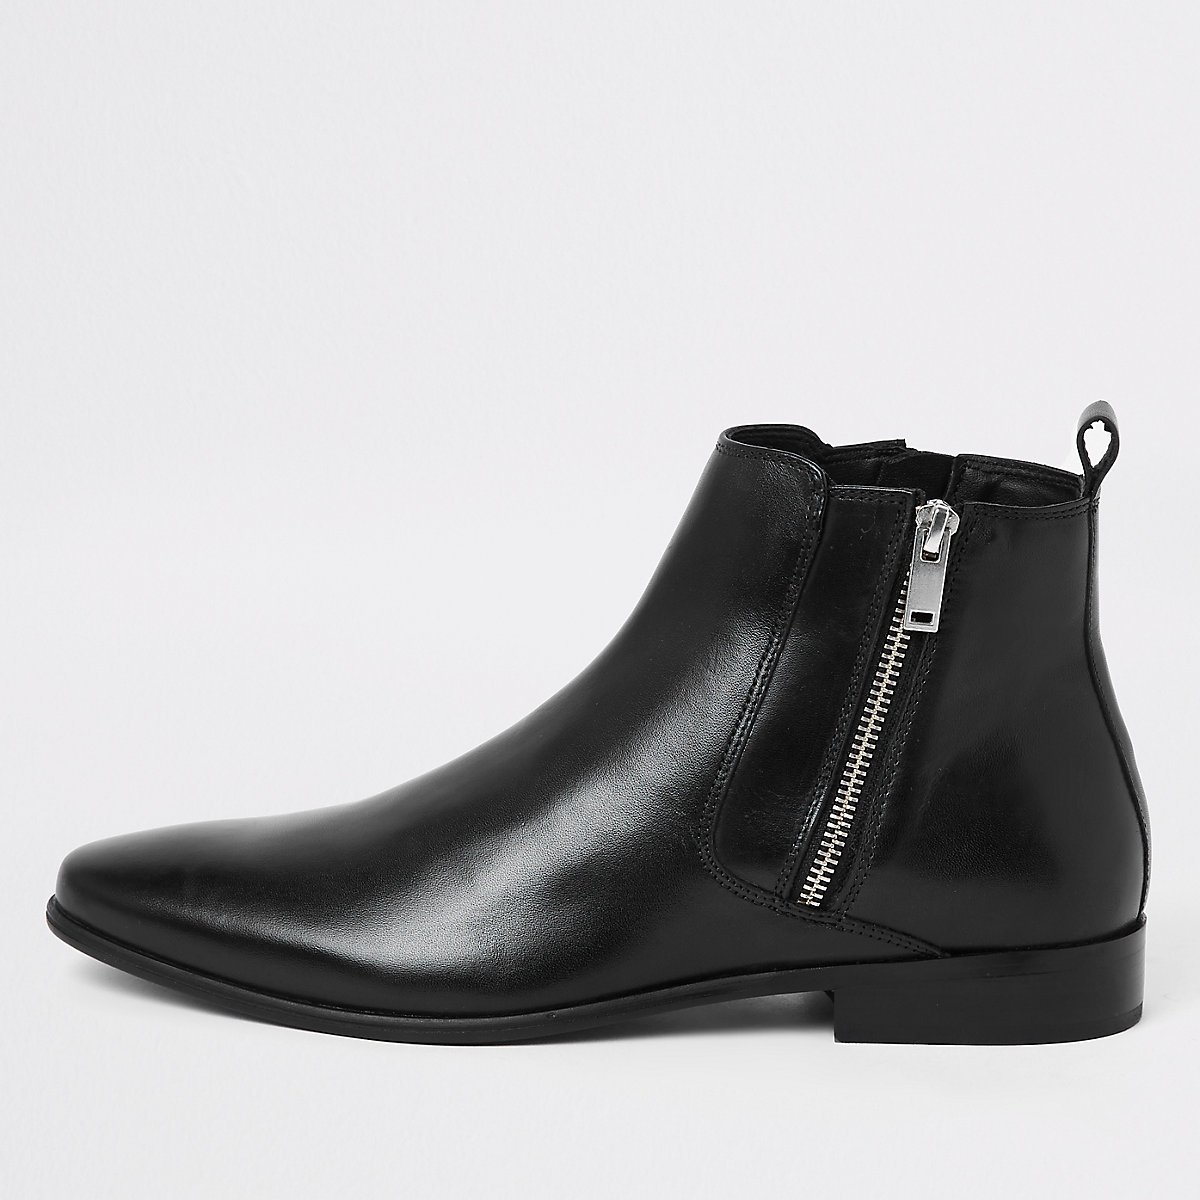 Black leather side chelsea boots